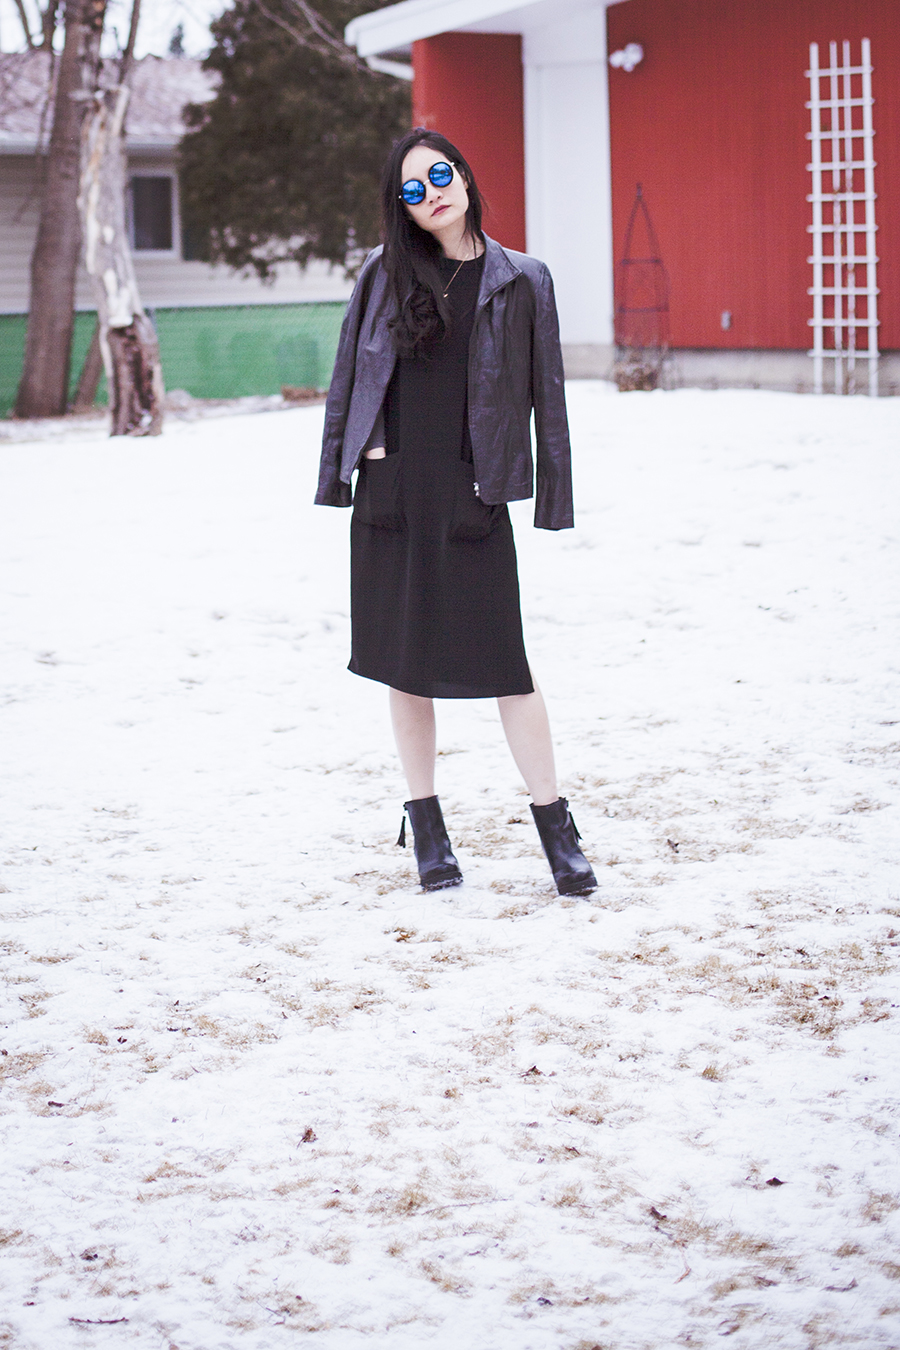 Monochrome winter outfit: P.Rossa black leather jacket, Forever 21 black dress, DealSale amethyst necklace, Uniqlo Heattech top, Steve Madden black tassel heel boots, CNDirect blue sunglasses.